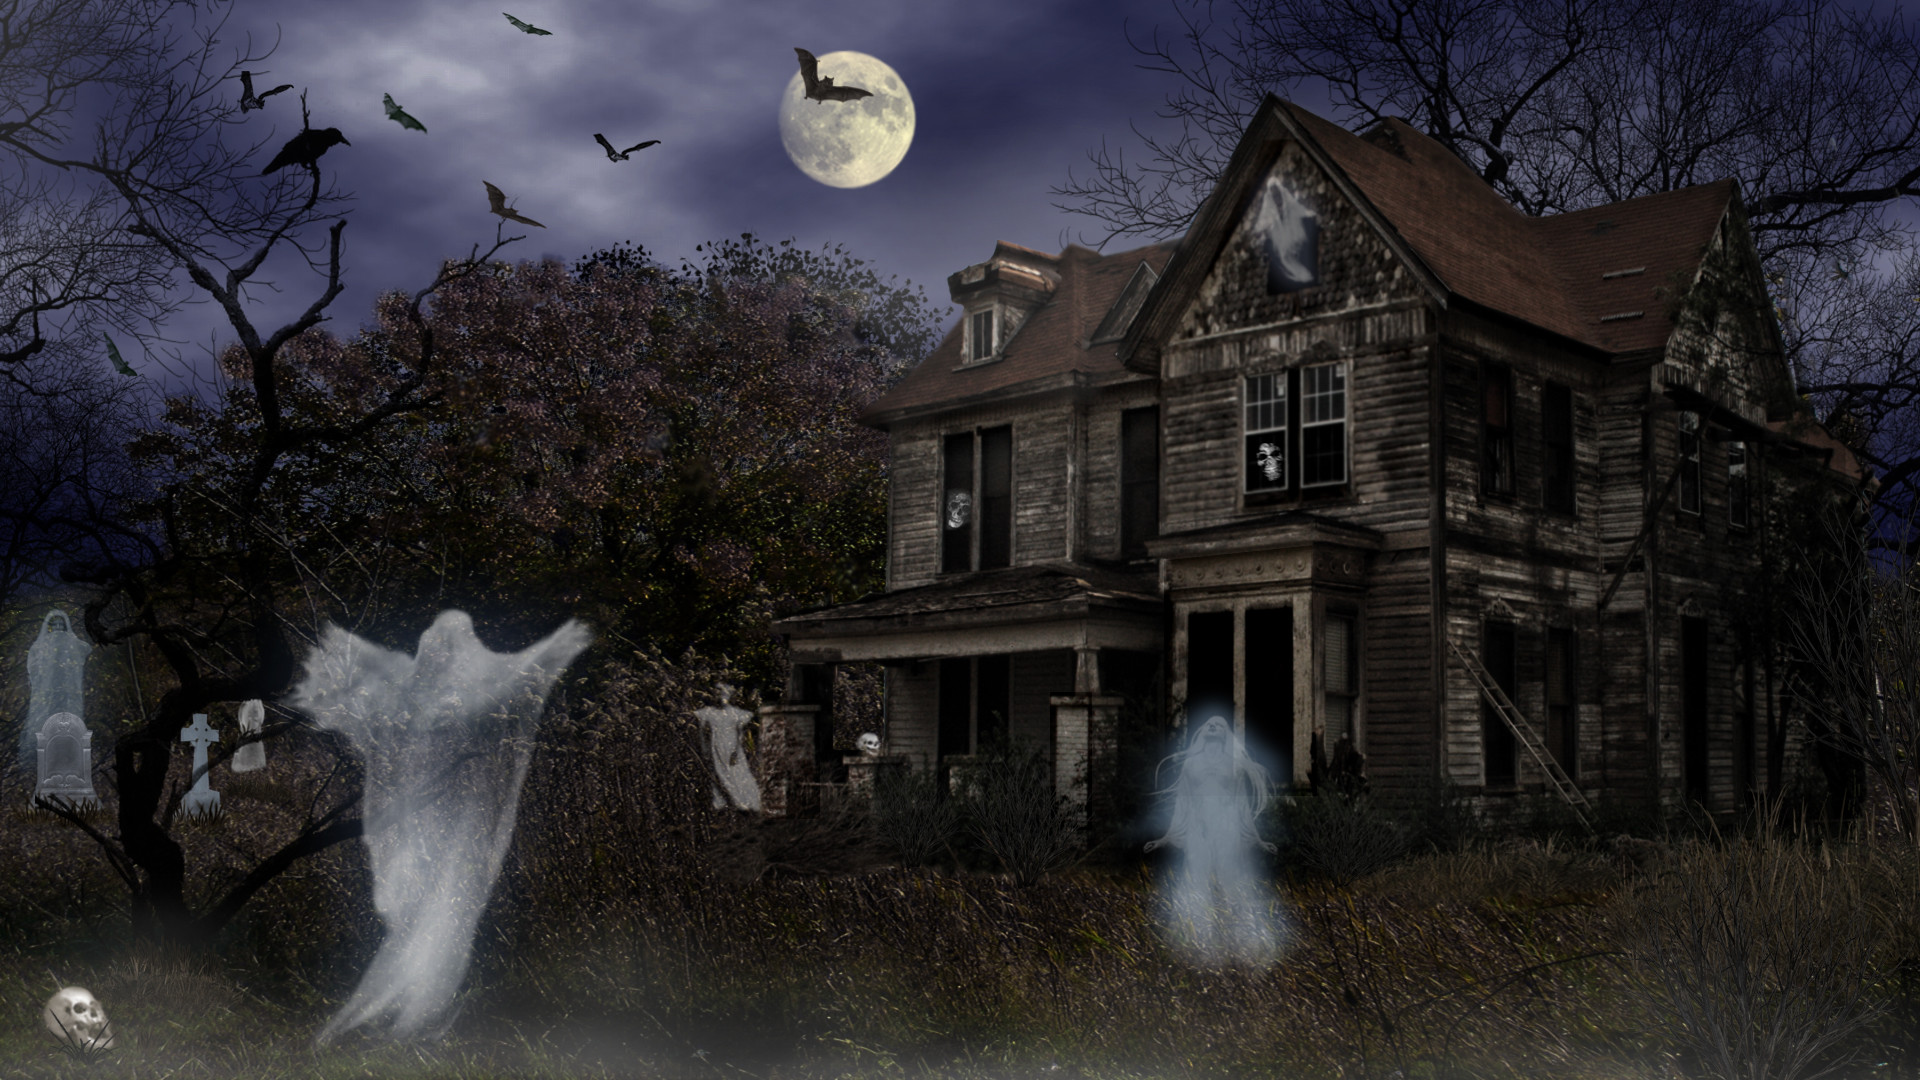 1920x1080 vacances halloween vacances haunted house maison night effrayant fond dcran wallpaper hd pinterest halloween haunted houses and wallpaper